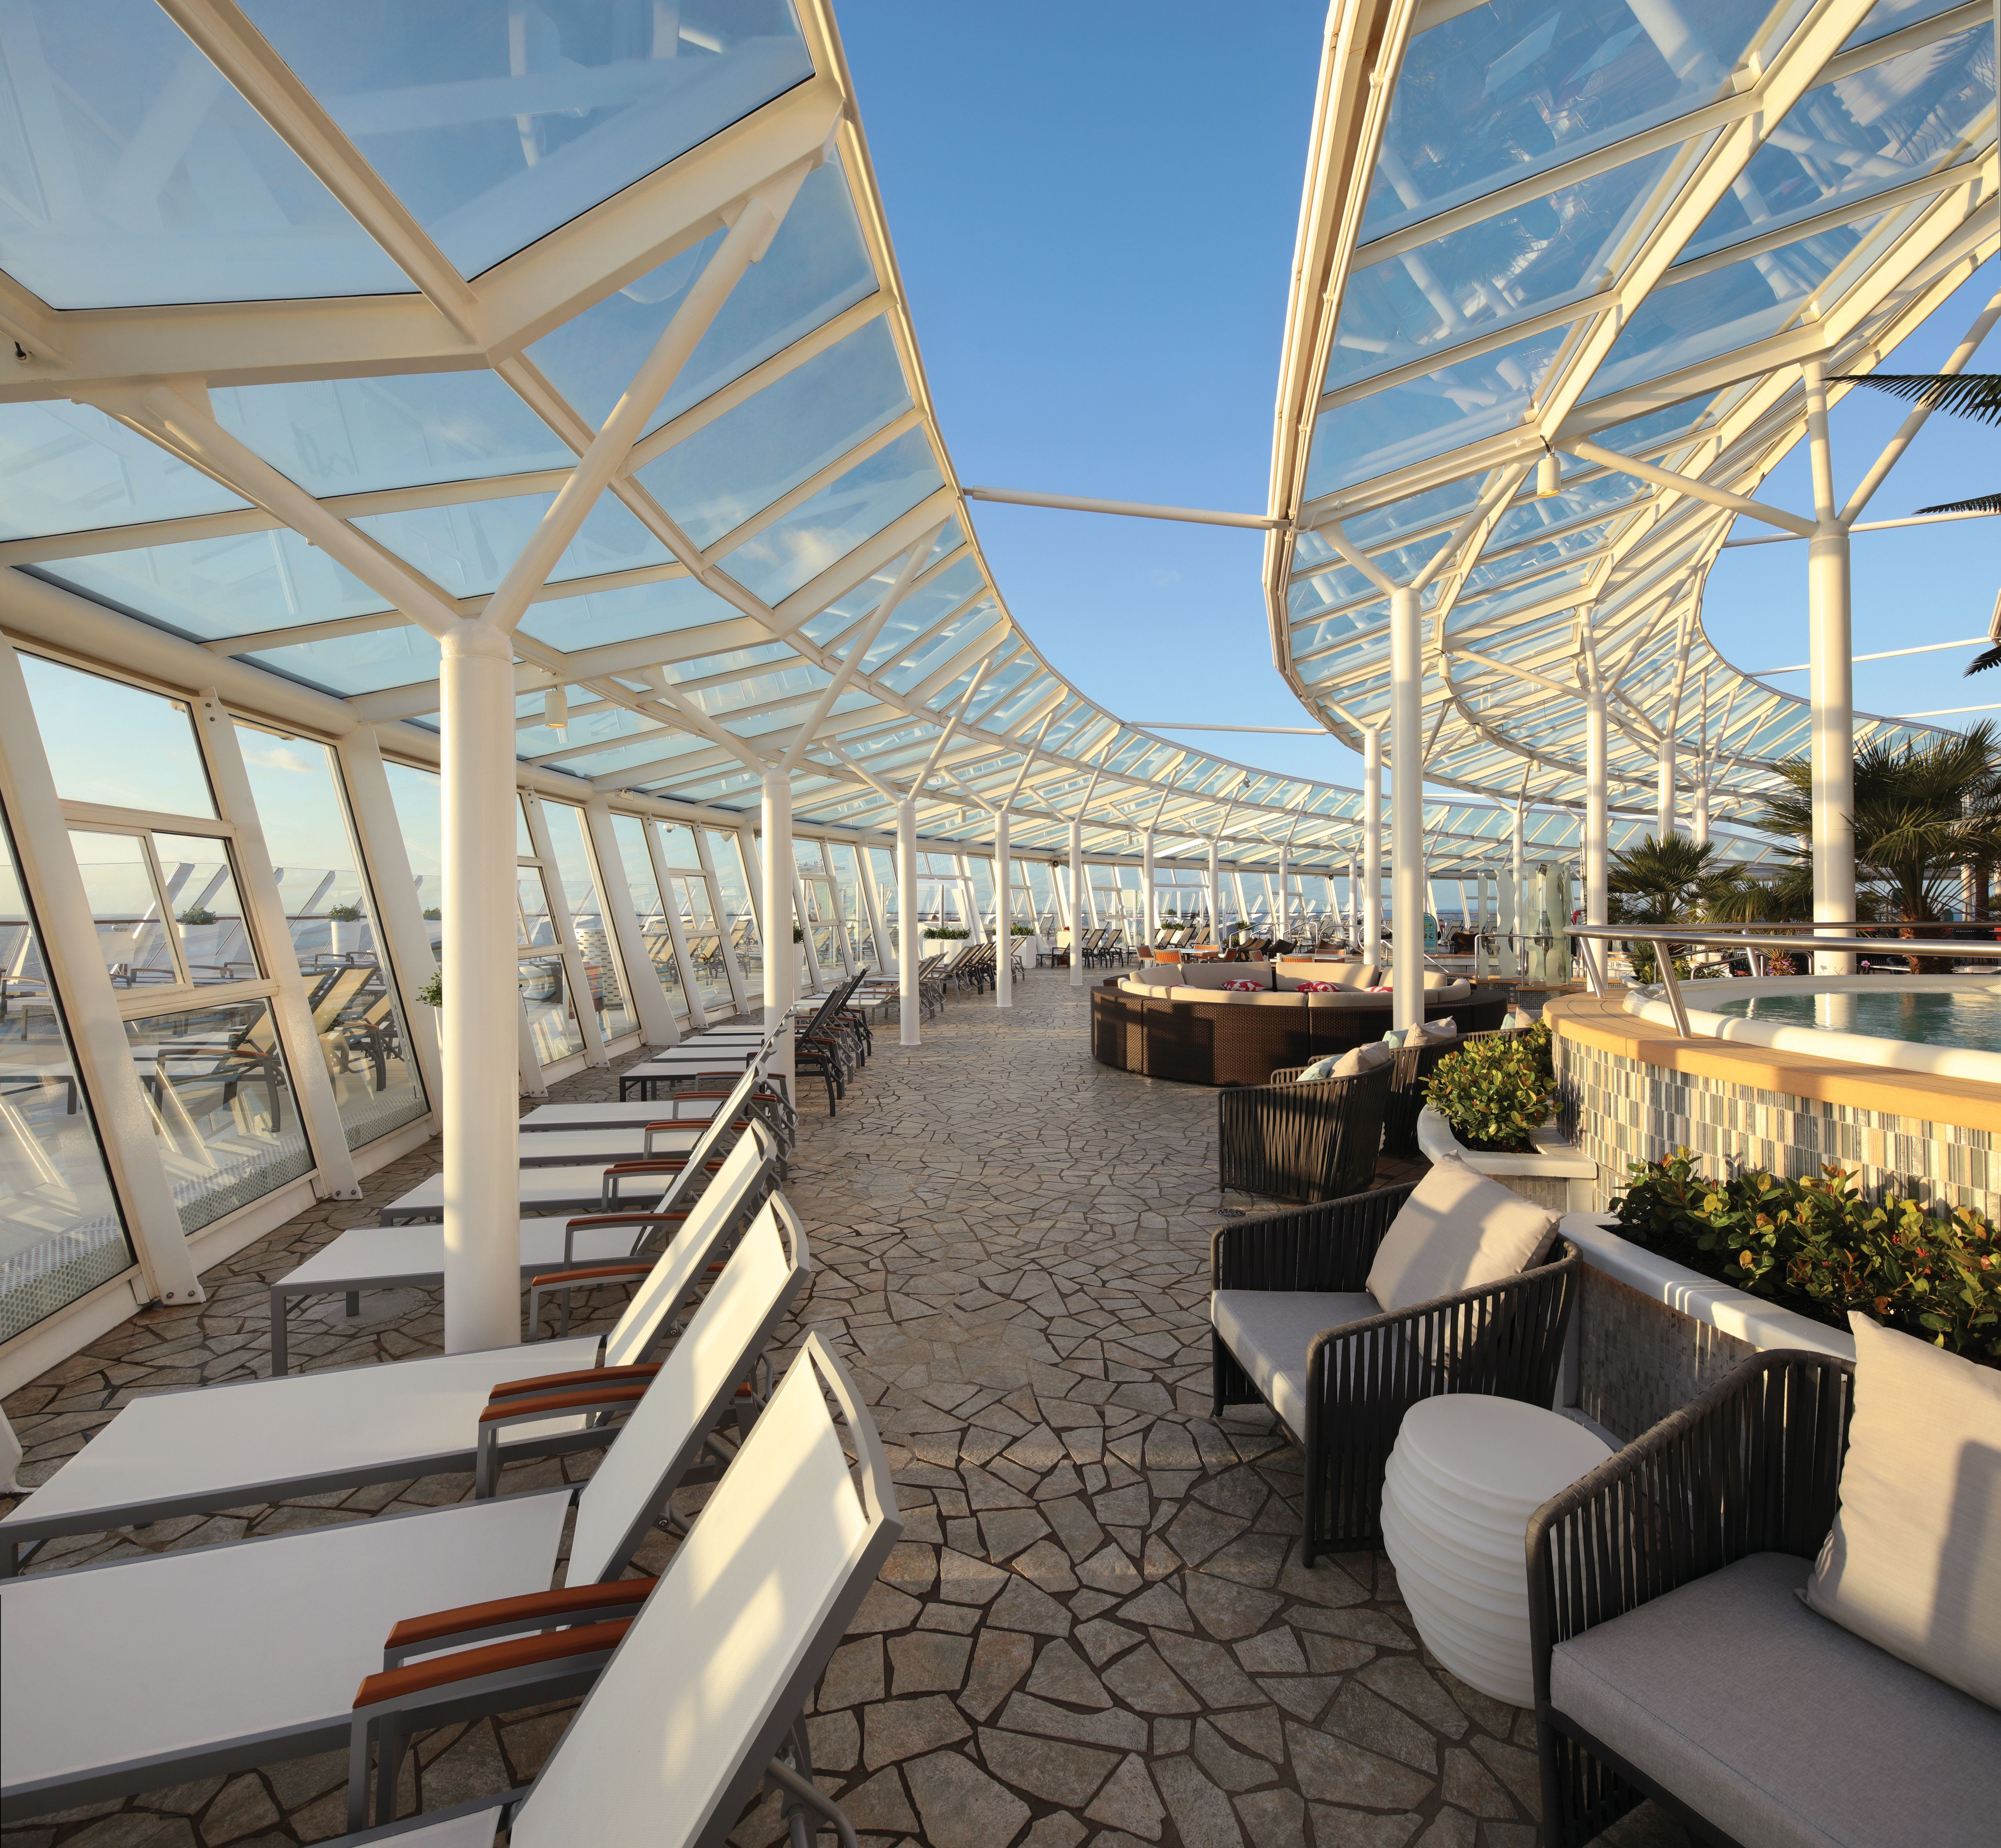 The Solarium, located on deck 15 forward of Royal Caribbean Oasis Class ships, is an adult only area perfect to relax. Lounge in one of the many chairs, take a dip in one of the pools, or simply enjoy the views! Royal Caribbean cruise vacations offer something for everyone! Let us help find the right cruise for your family! 📷: #RoyalCaribbean